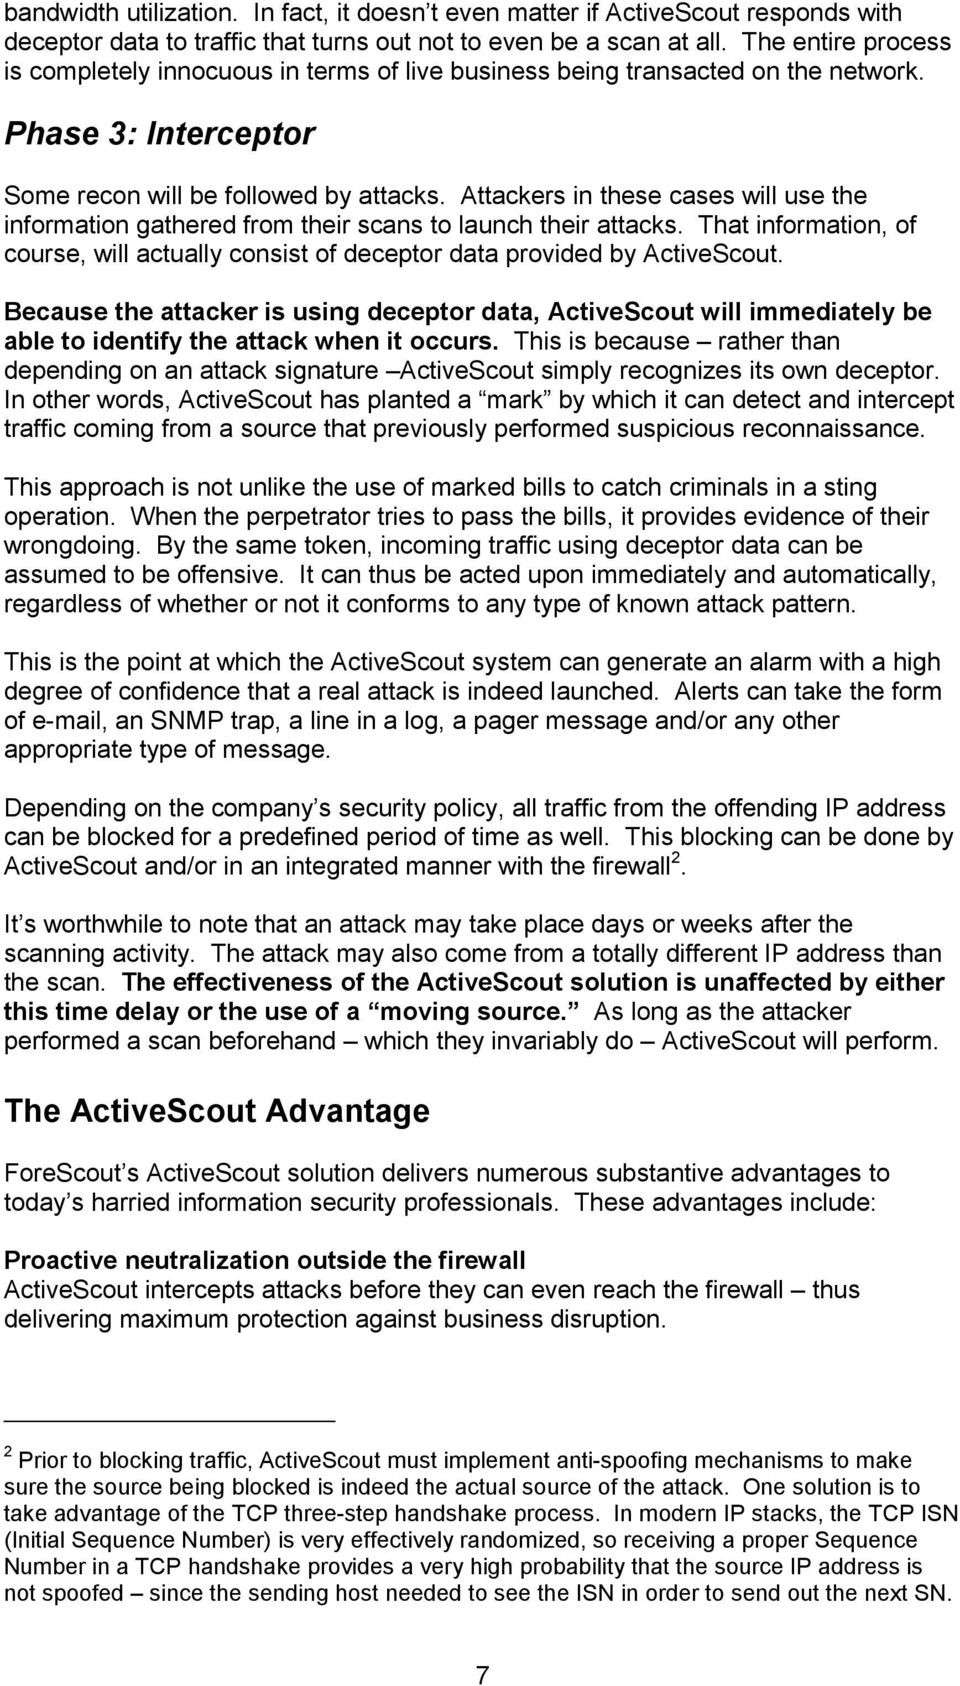 Attackers in these cases will use the information gathered from their scans to launch their attacks. That information, of course, will actually consist of deceptor data provided by ActiveScout.